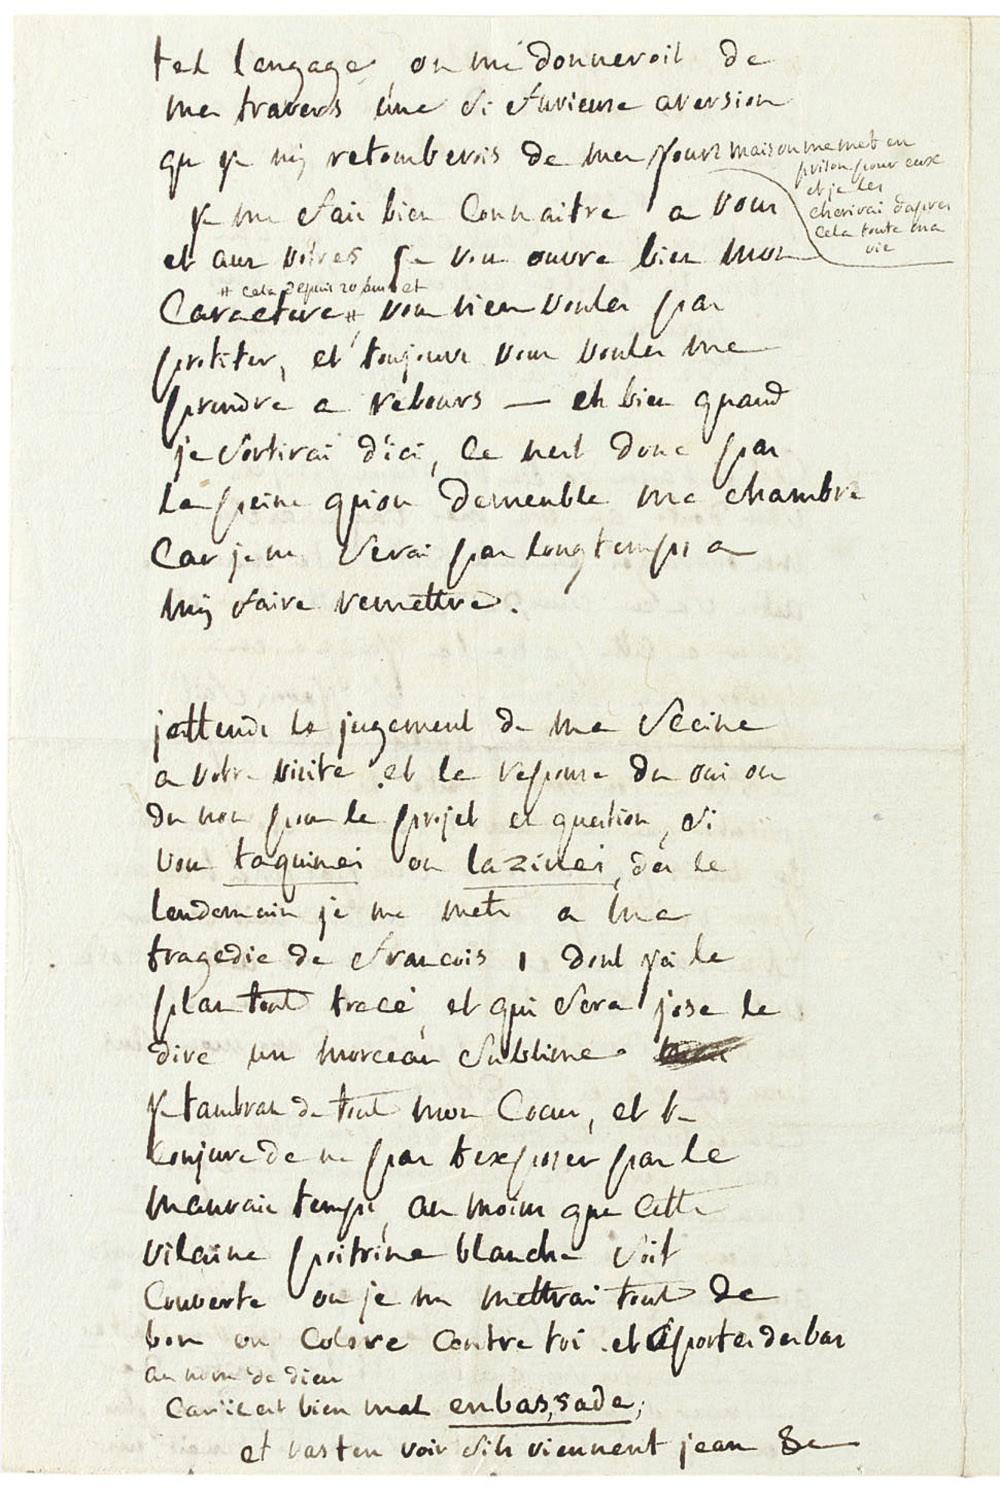 SADE, Donatien Alphonse François, Marquis de (1740-1814). Autograph letter signed (with a complicated and untranslatable pun on his obsession with embassies, 'Et aportes des bas au nom de dieu  Car il est bien mal en bas, sade'), to his wife ('ma chere amie'), n.p. [Vincennes], n.d. [February 1784], 4 pages, 8vo.